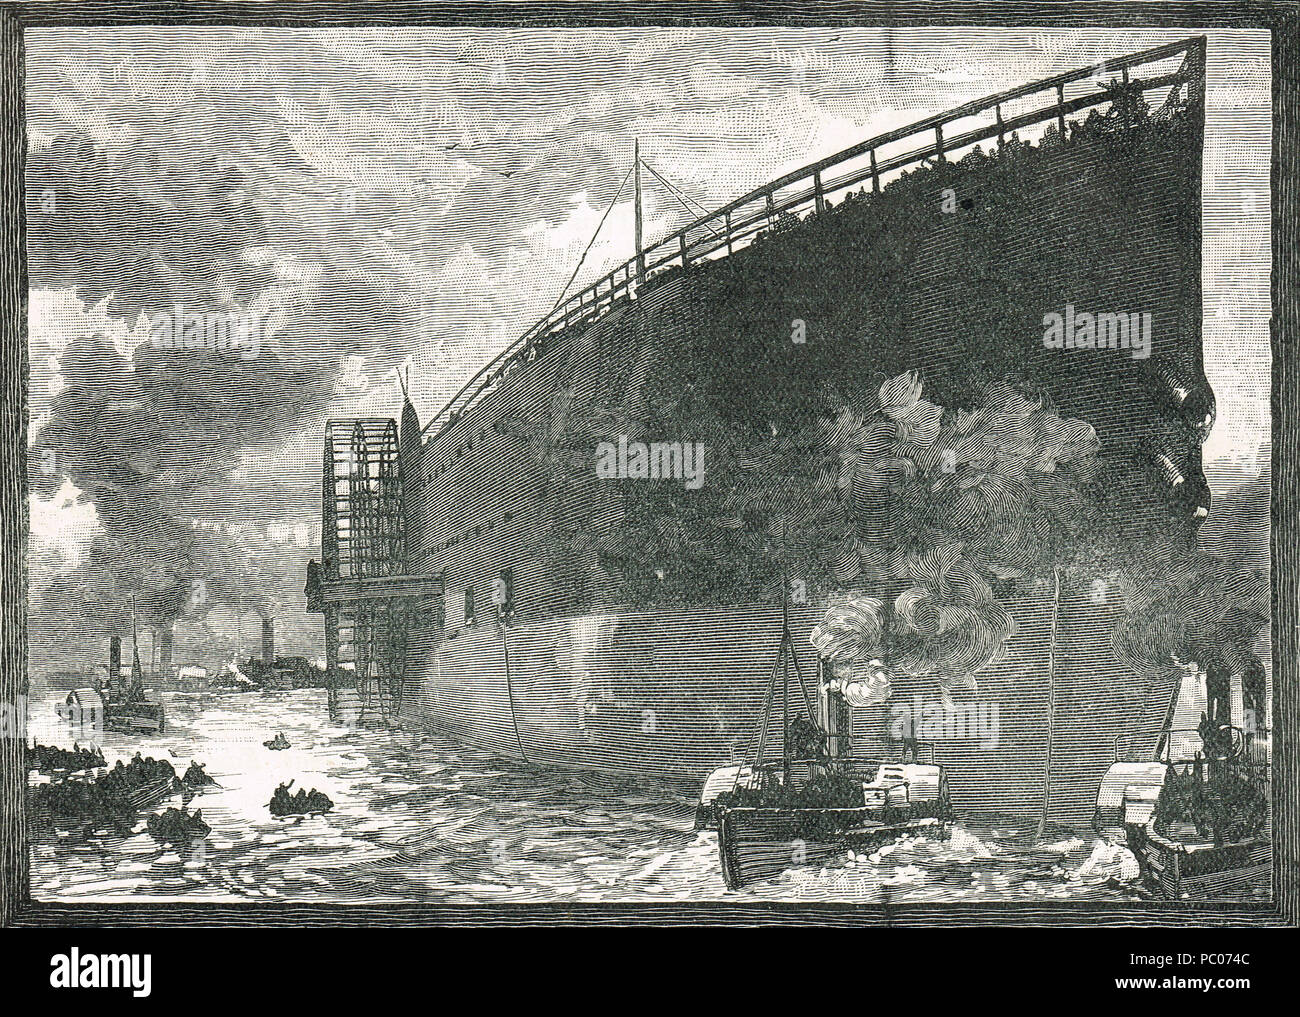 Launch of SS Great Eastern, 31 January 1858 - Stock Image